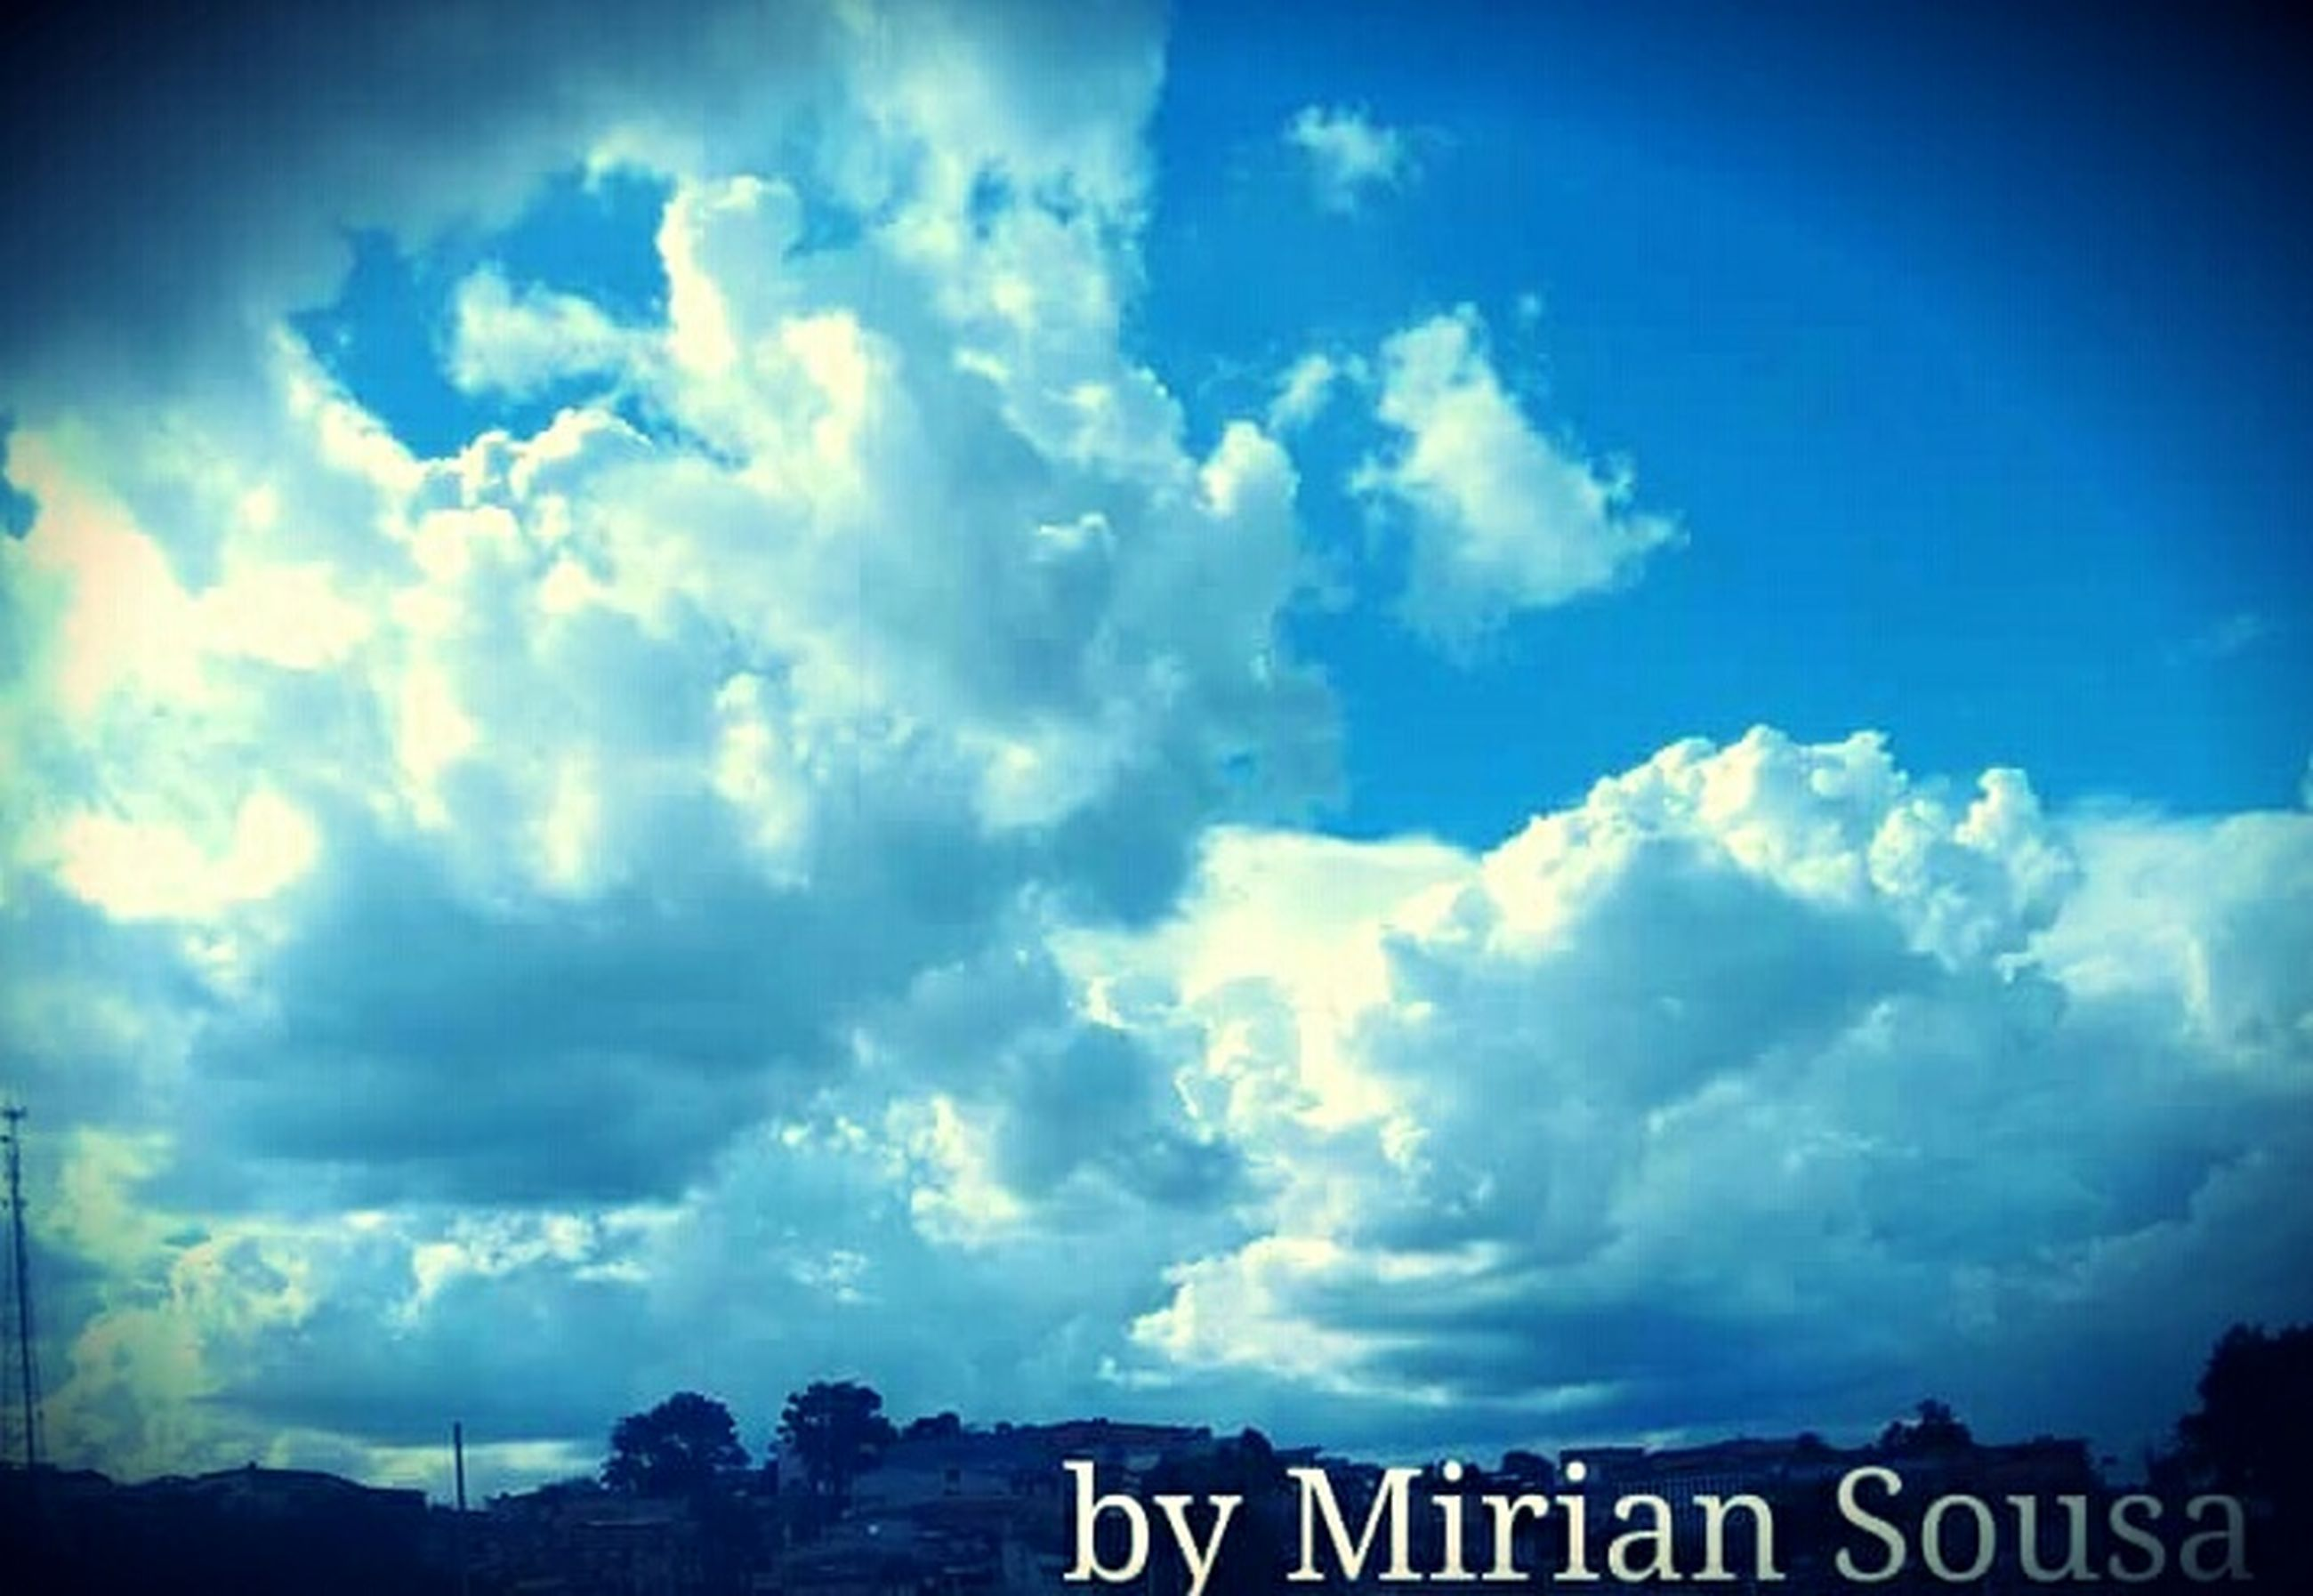 sky, cloud - sky, text, western script, communication, cloudy, cloud, low angle view, blue, tranquility, nature, scenics, sign, information sign, outdoors, tranquil scene, beauty in nature, no people, capital letter, day